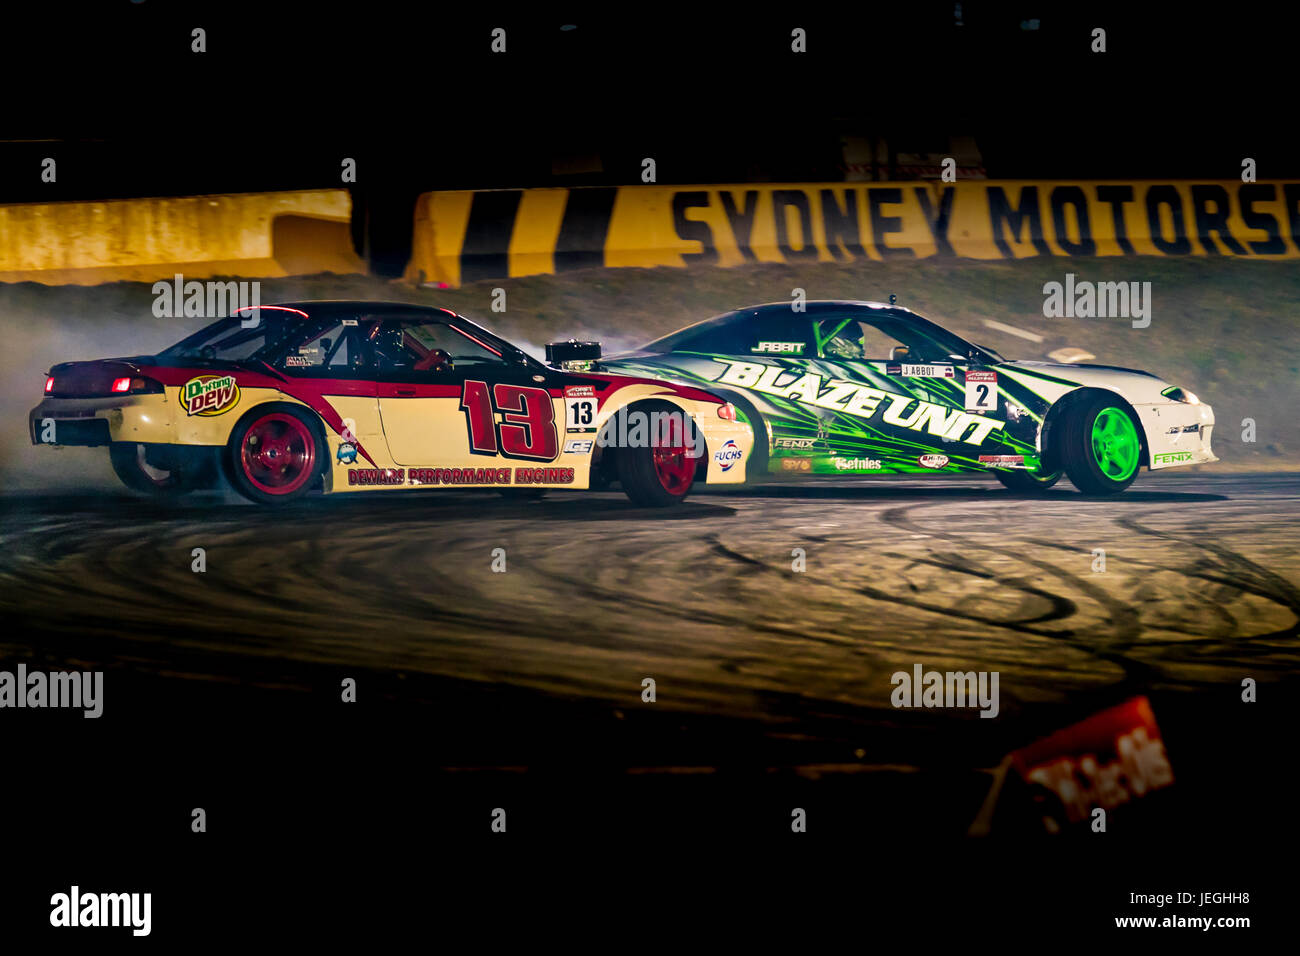 Sydney Motorsport Park, Australia. 24th June 2017.  Jabbit & Aaron Dewar in an epic battle. Anthony Bolack/Alamy Stock Photo